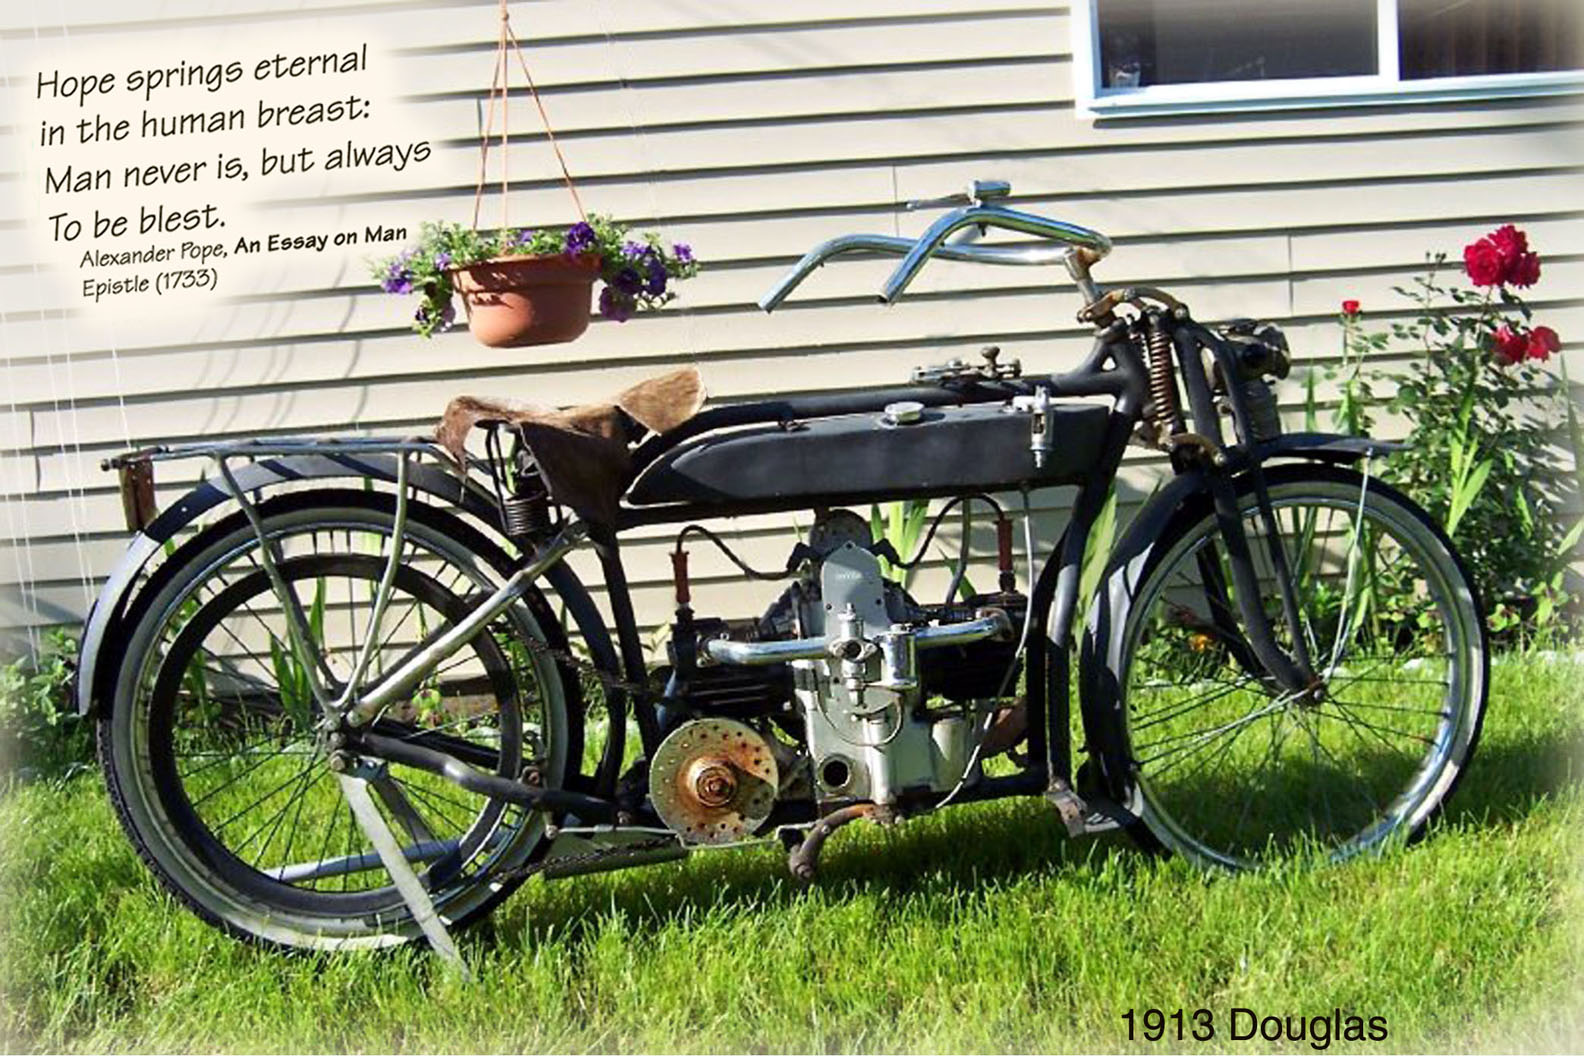 Motorcycle in garden.